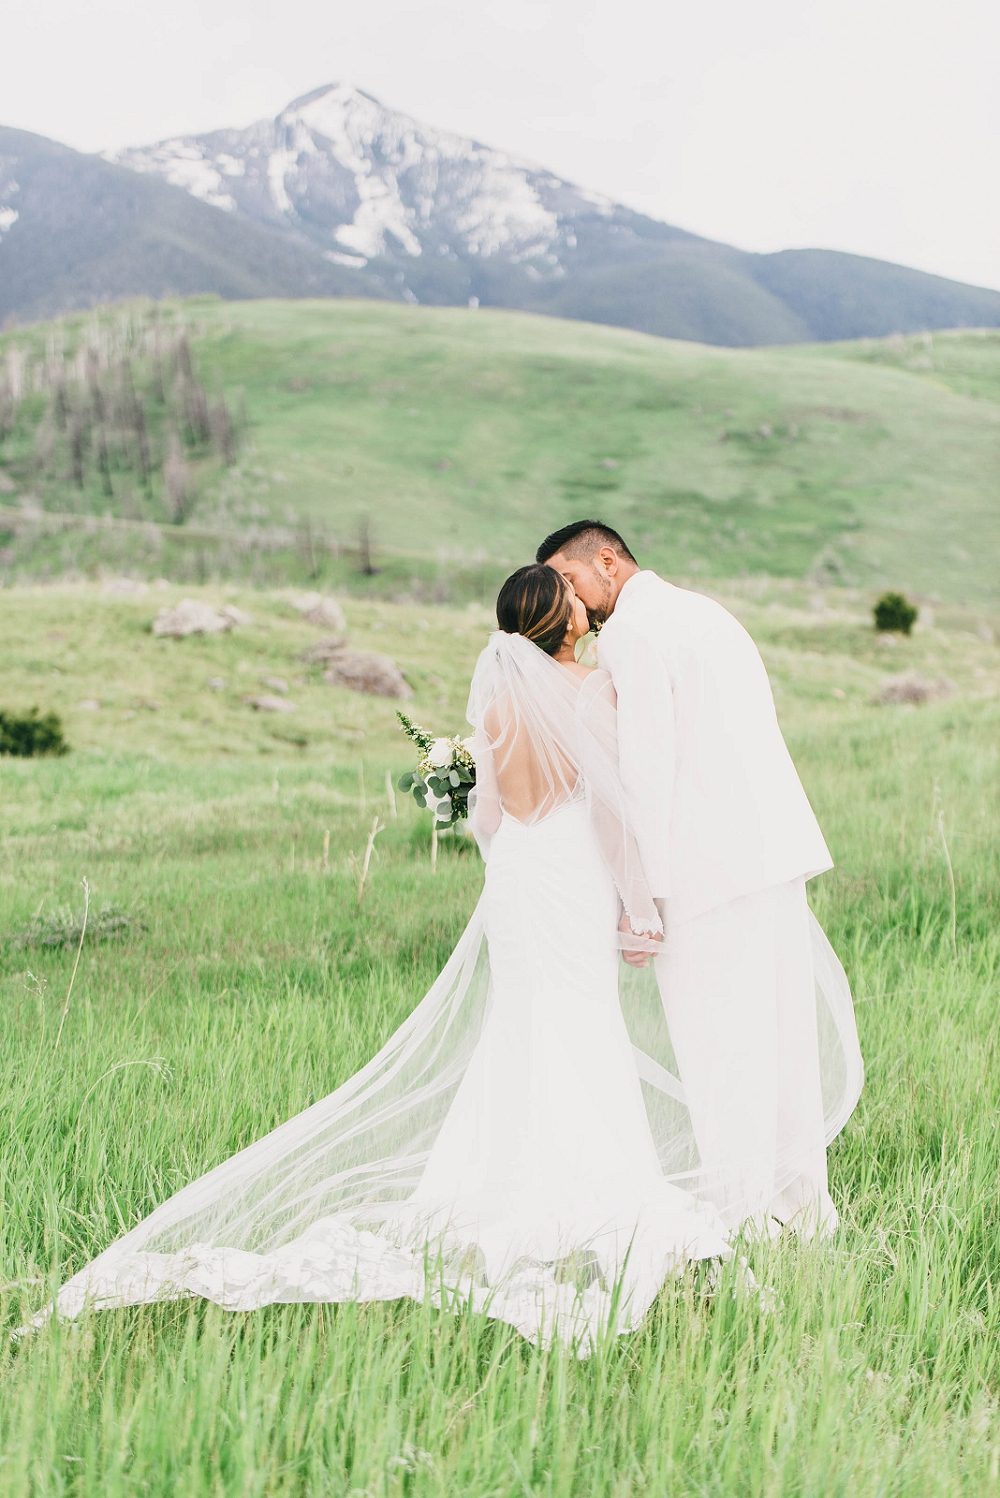 Jennifer_Mooney_Photography__Elegant_Bozeman_Montana_Wedding_069.jpg